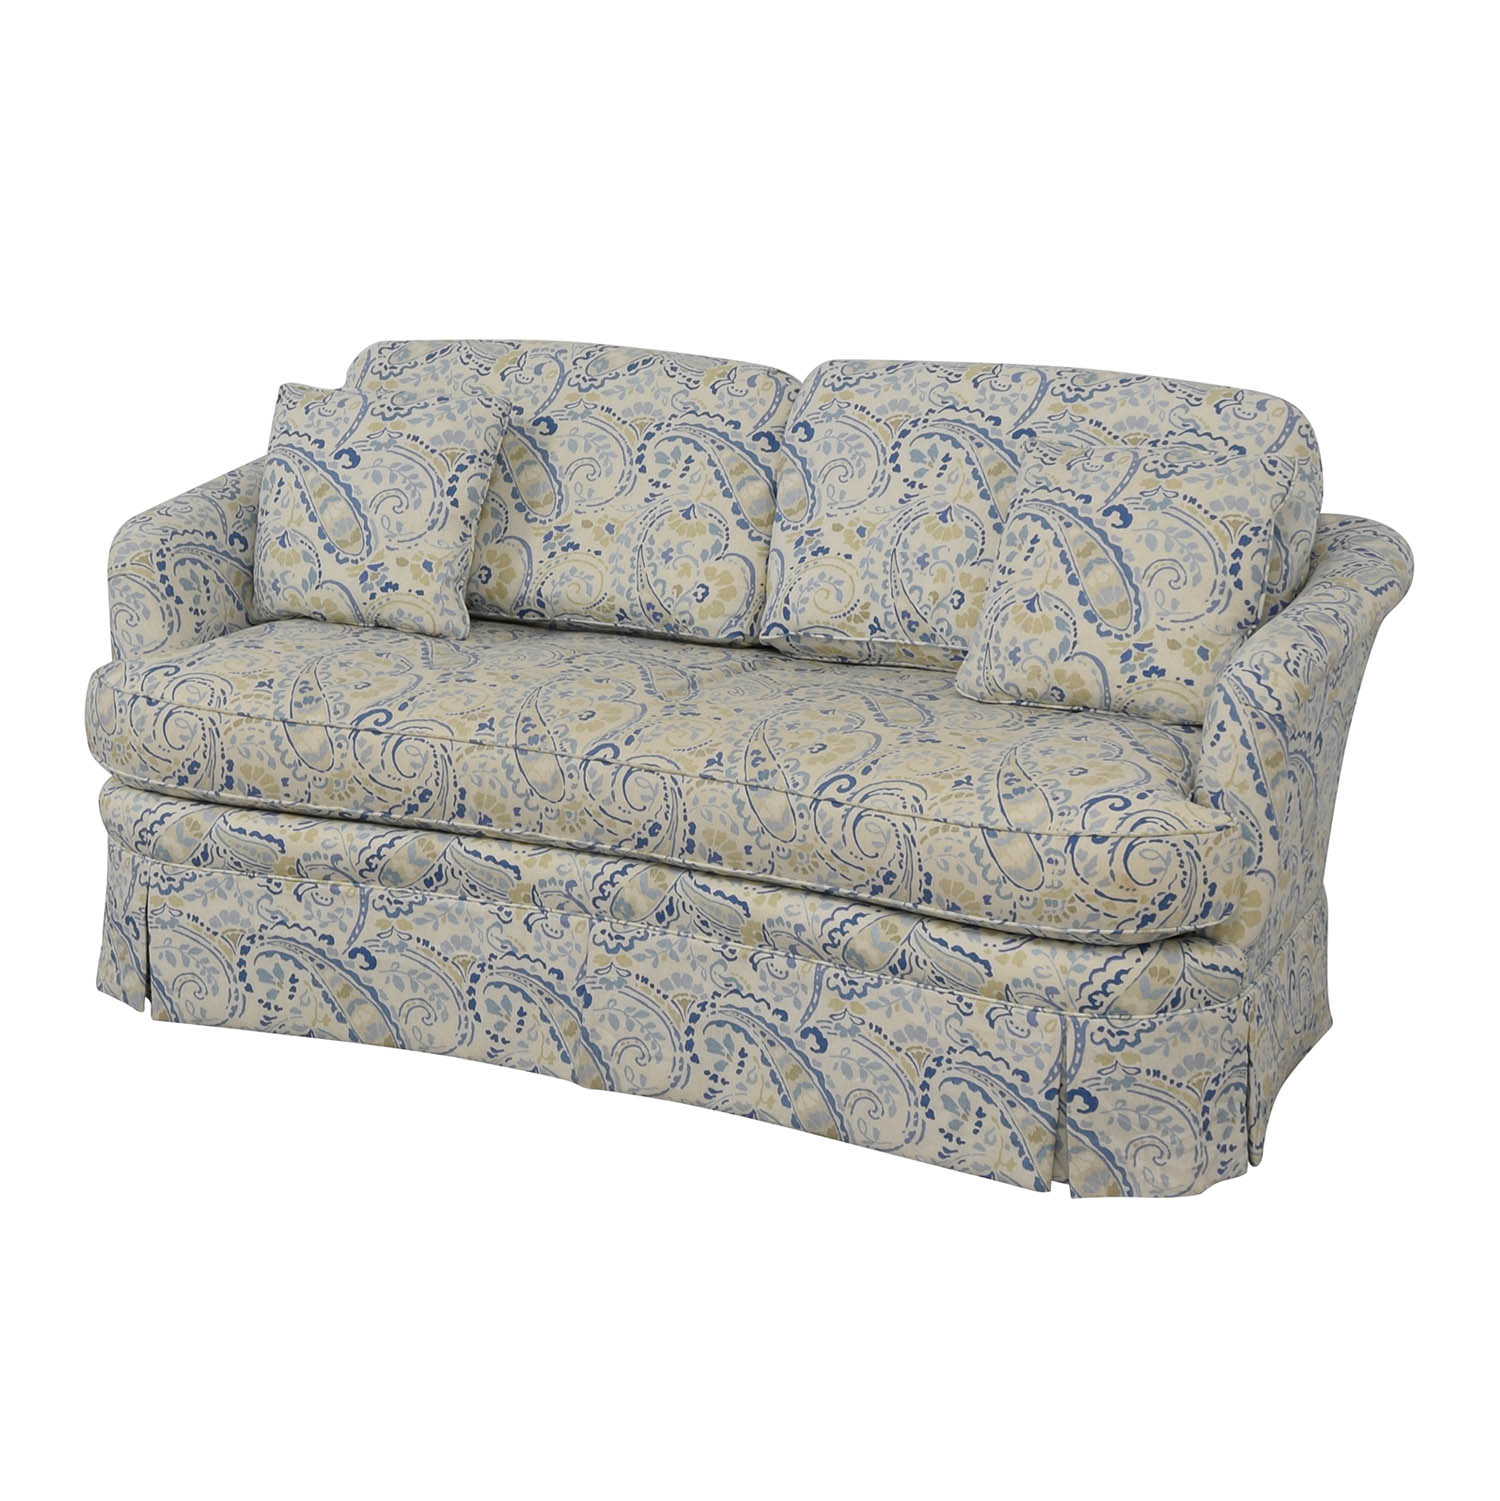 shop Taylor King Multi-Colored Single Cushion Love Seat Taylor King